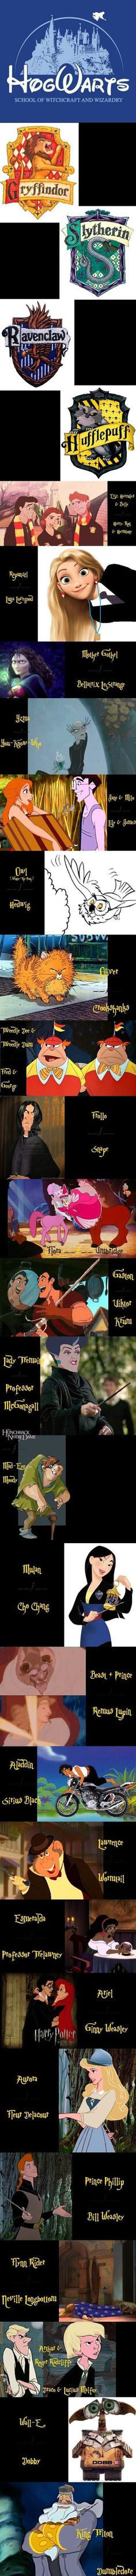 funny-Disney-Harry-Potter-characters